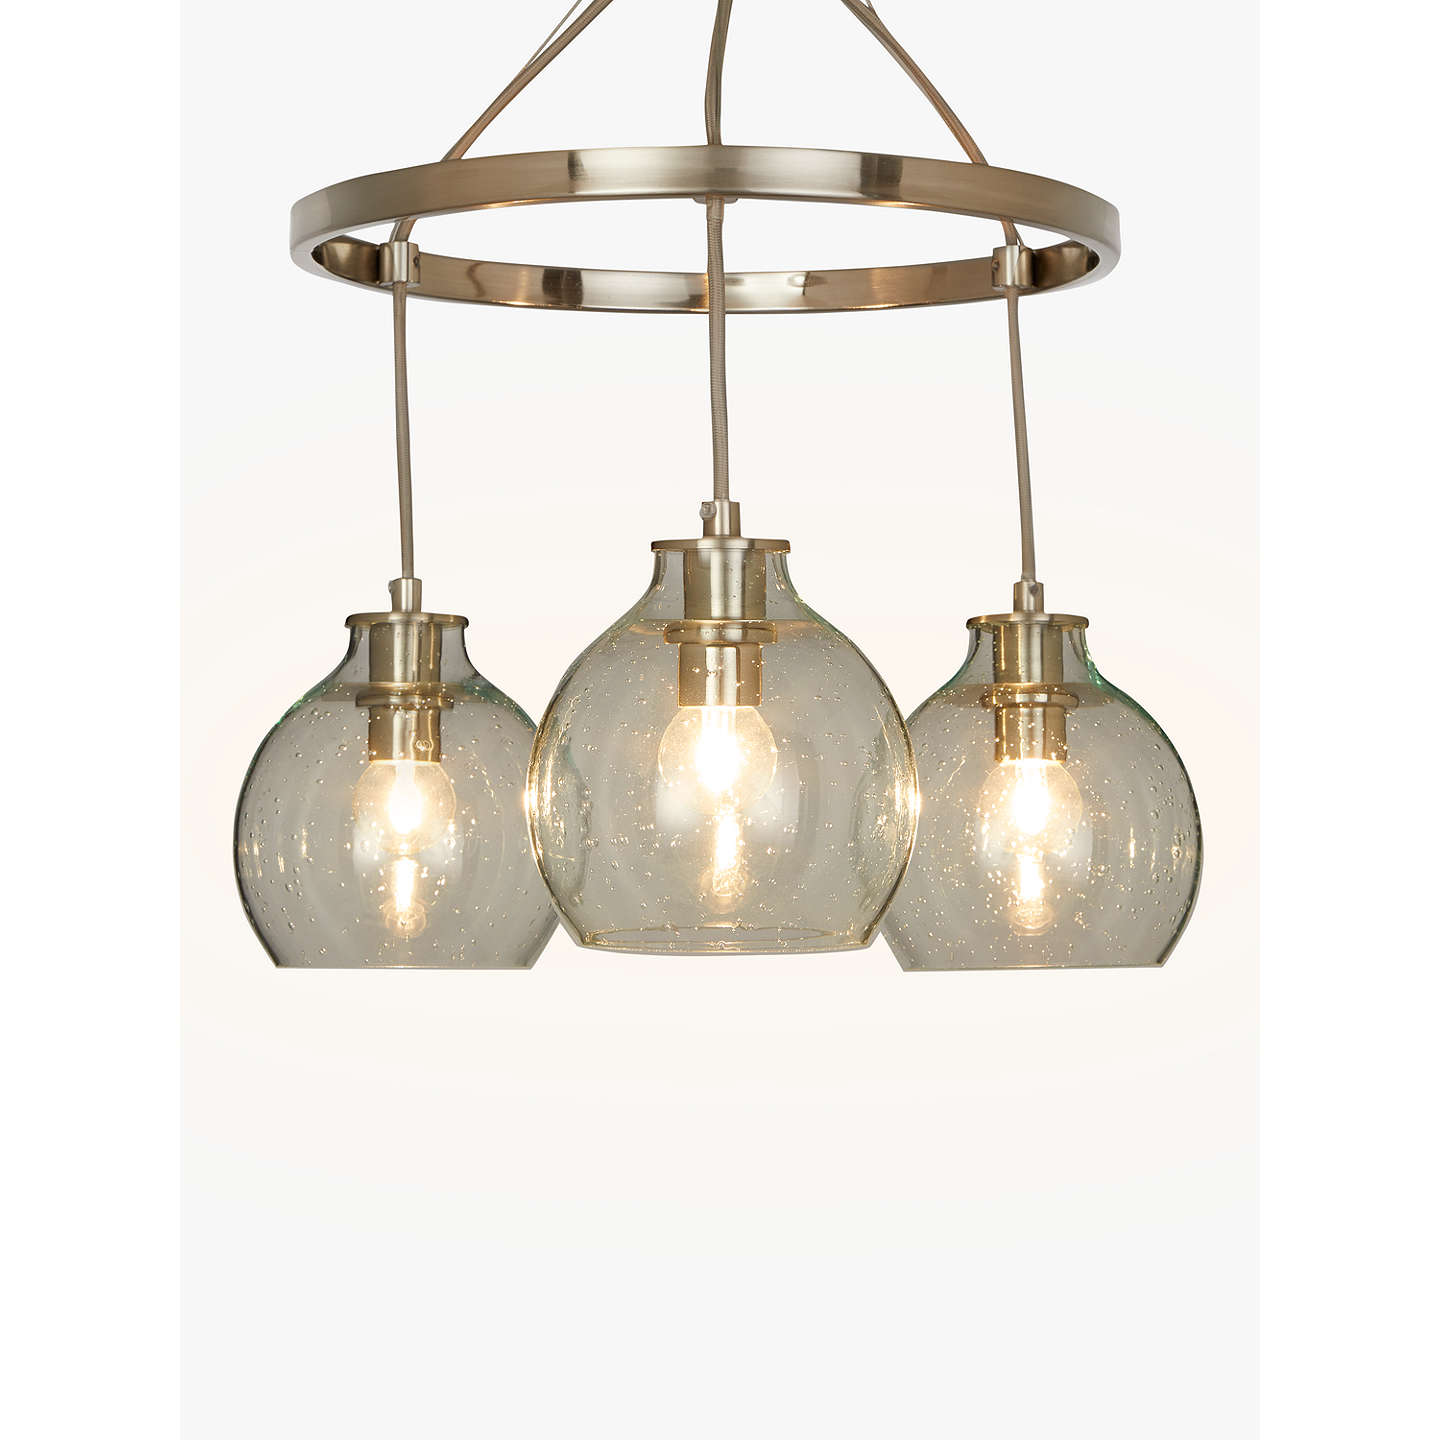 Croft collection selsey semi flush 3 pendant ceiling light blue buycroft collection selsey semi flush 3 pendant ceiling light bluechrome online at mozeypictures Image collections